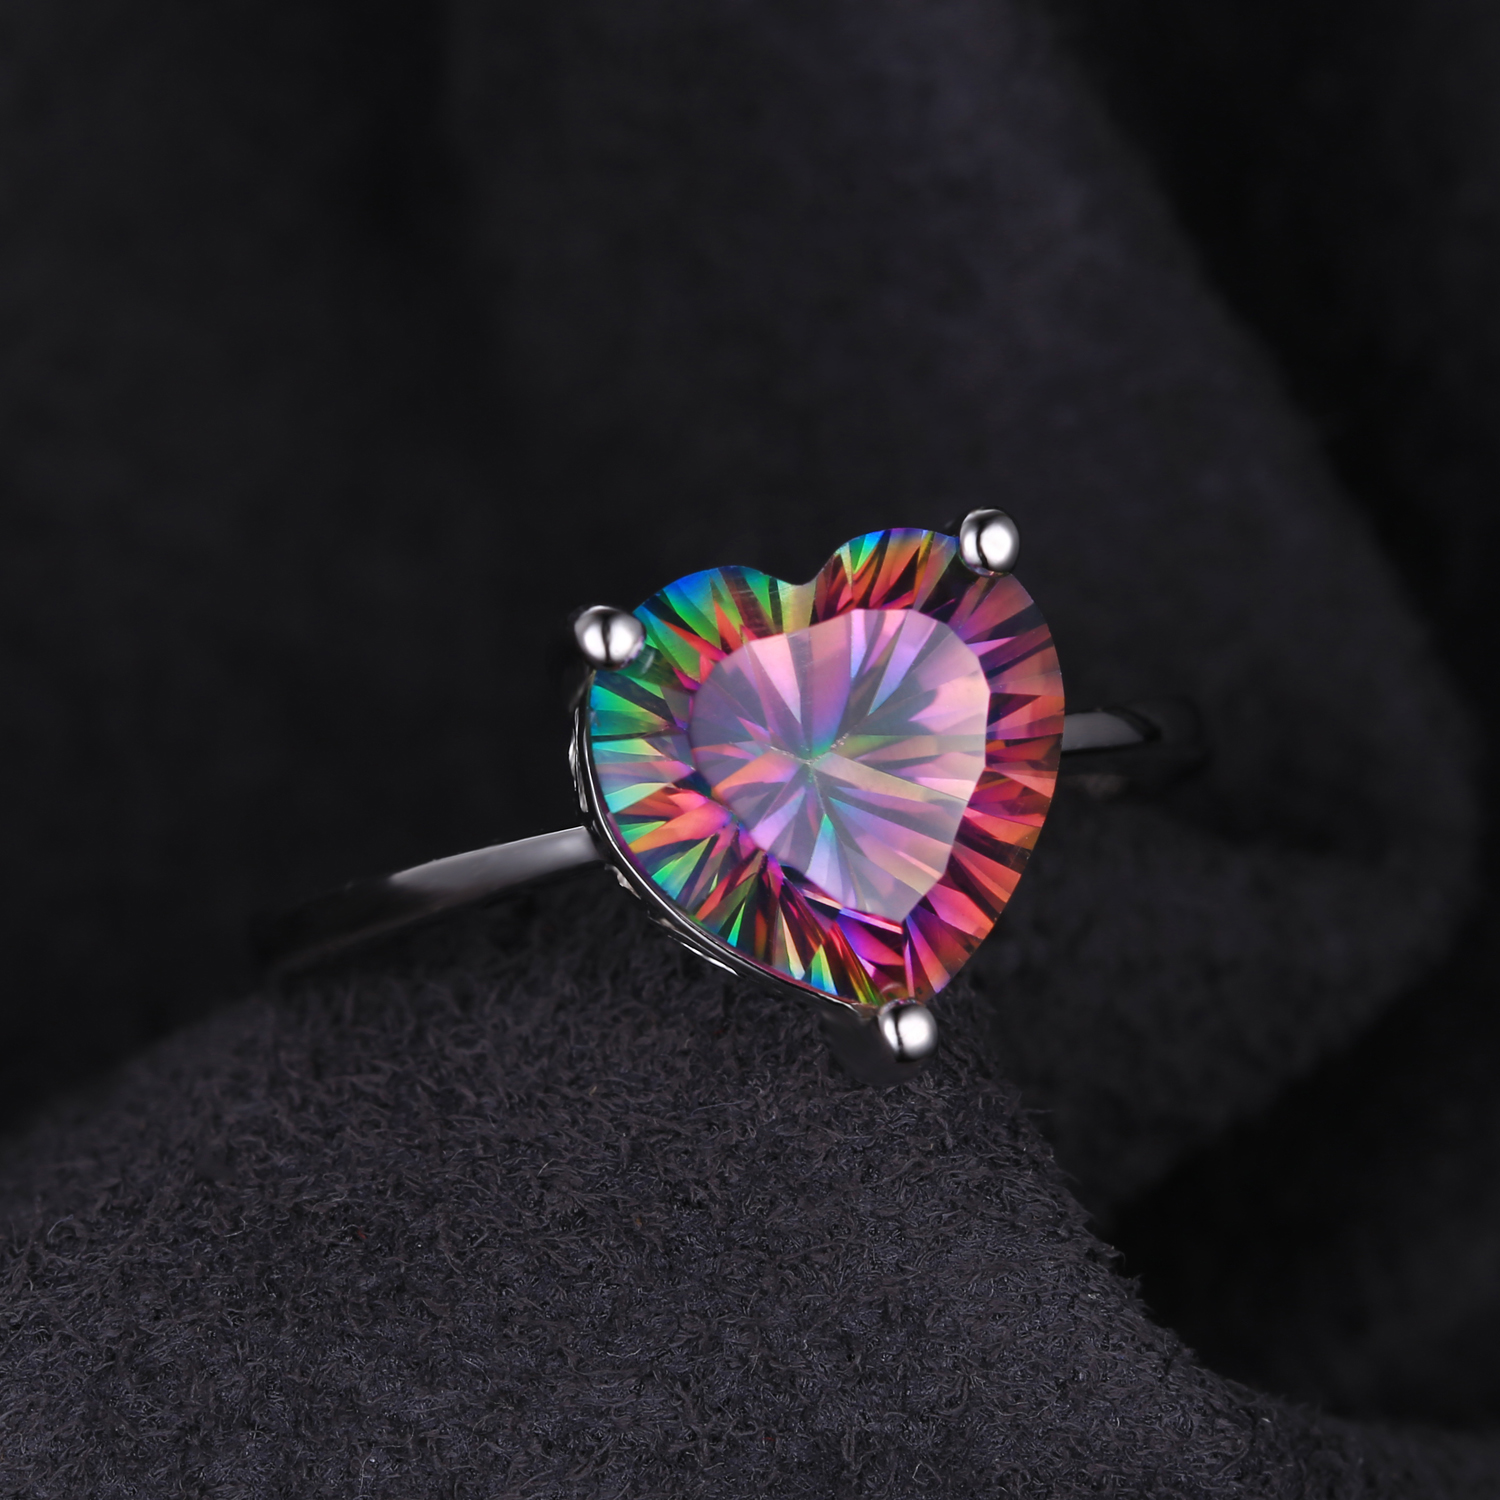 3 1/6 CT Heart Mystic Topaz Cocktail Ring in .925 Sterling Silver - Size 7 (MDS170262) - image 1 of 2